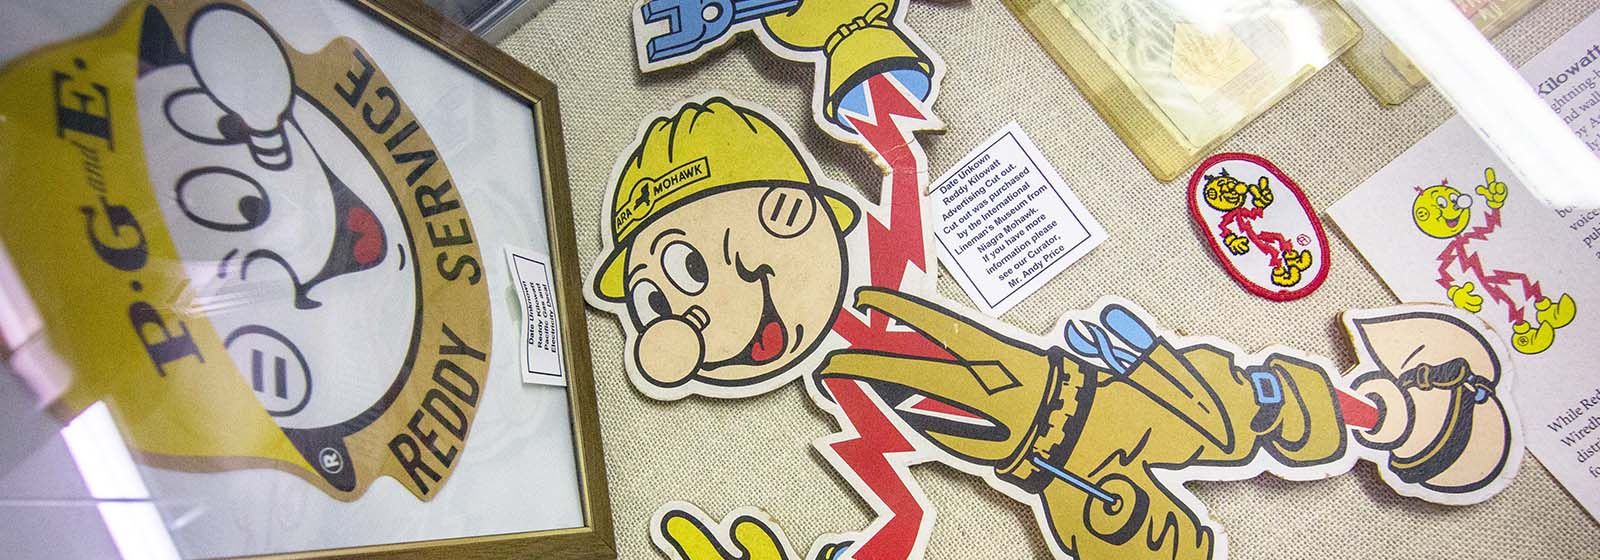 Whatever happened to Reddy Kilowatt?